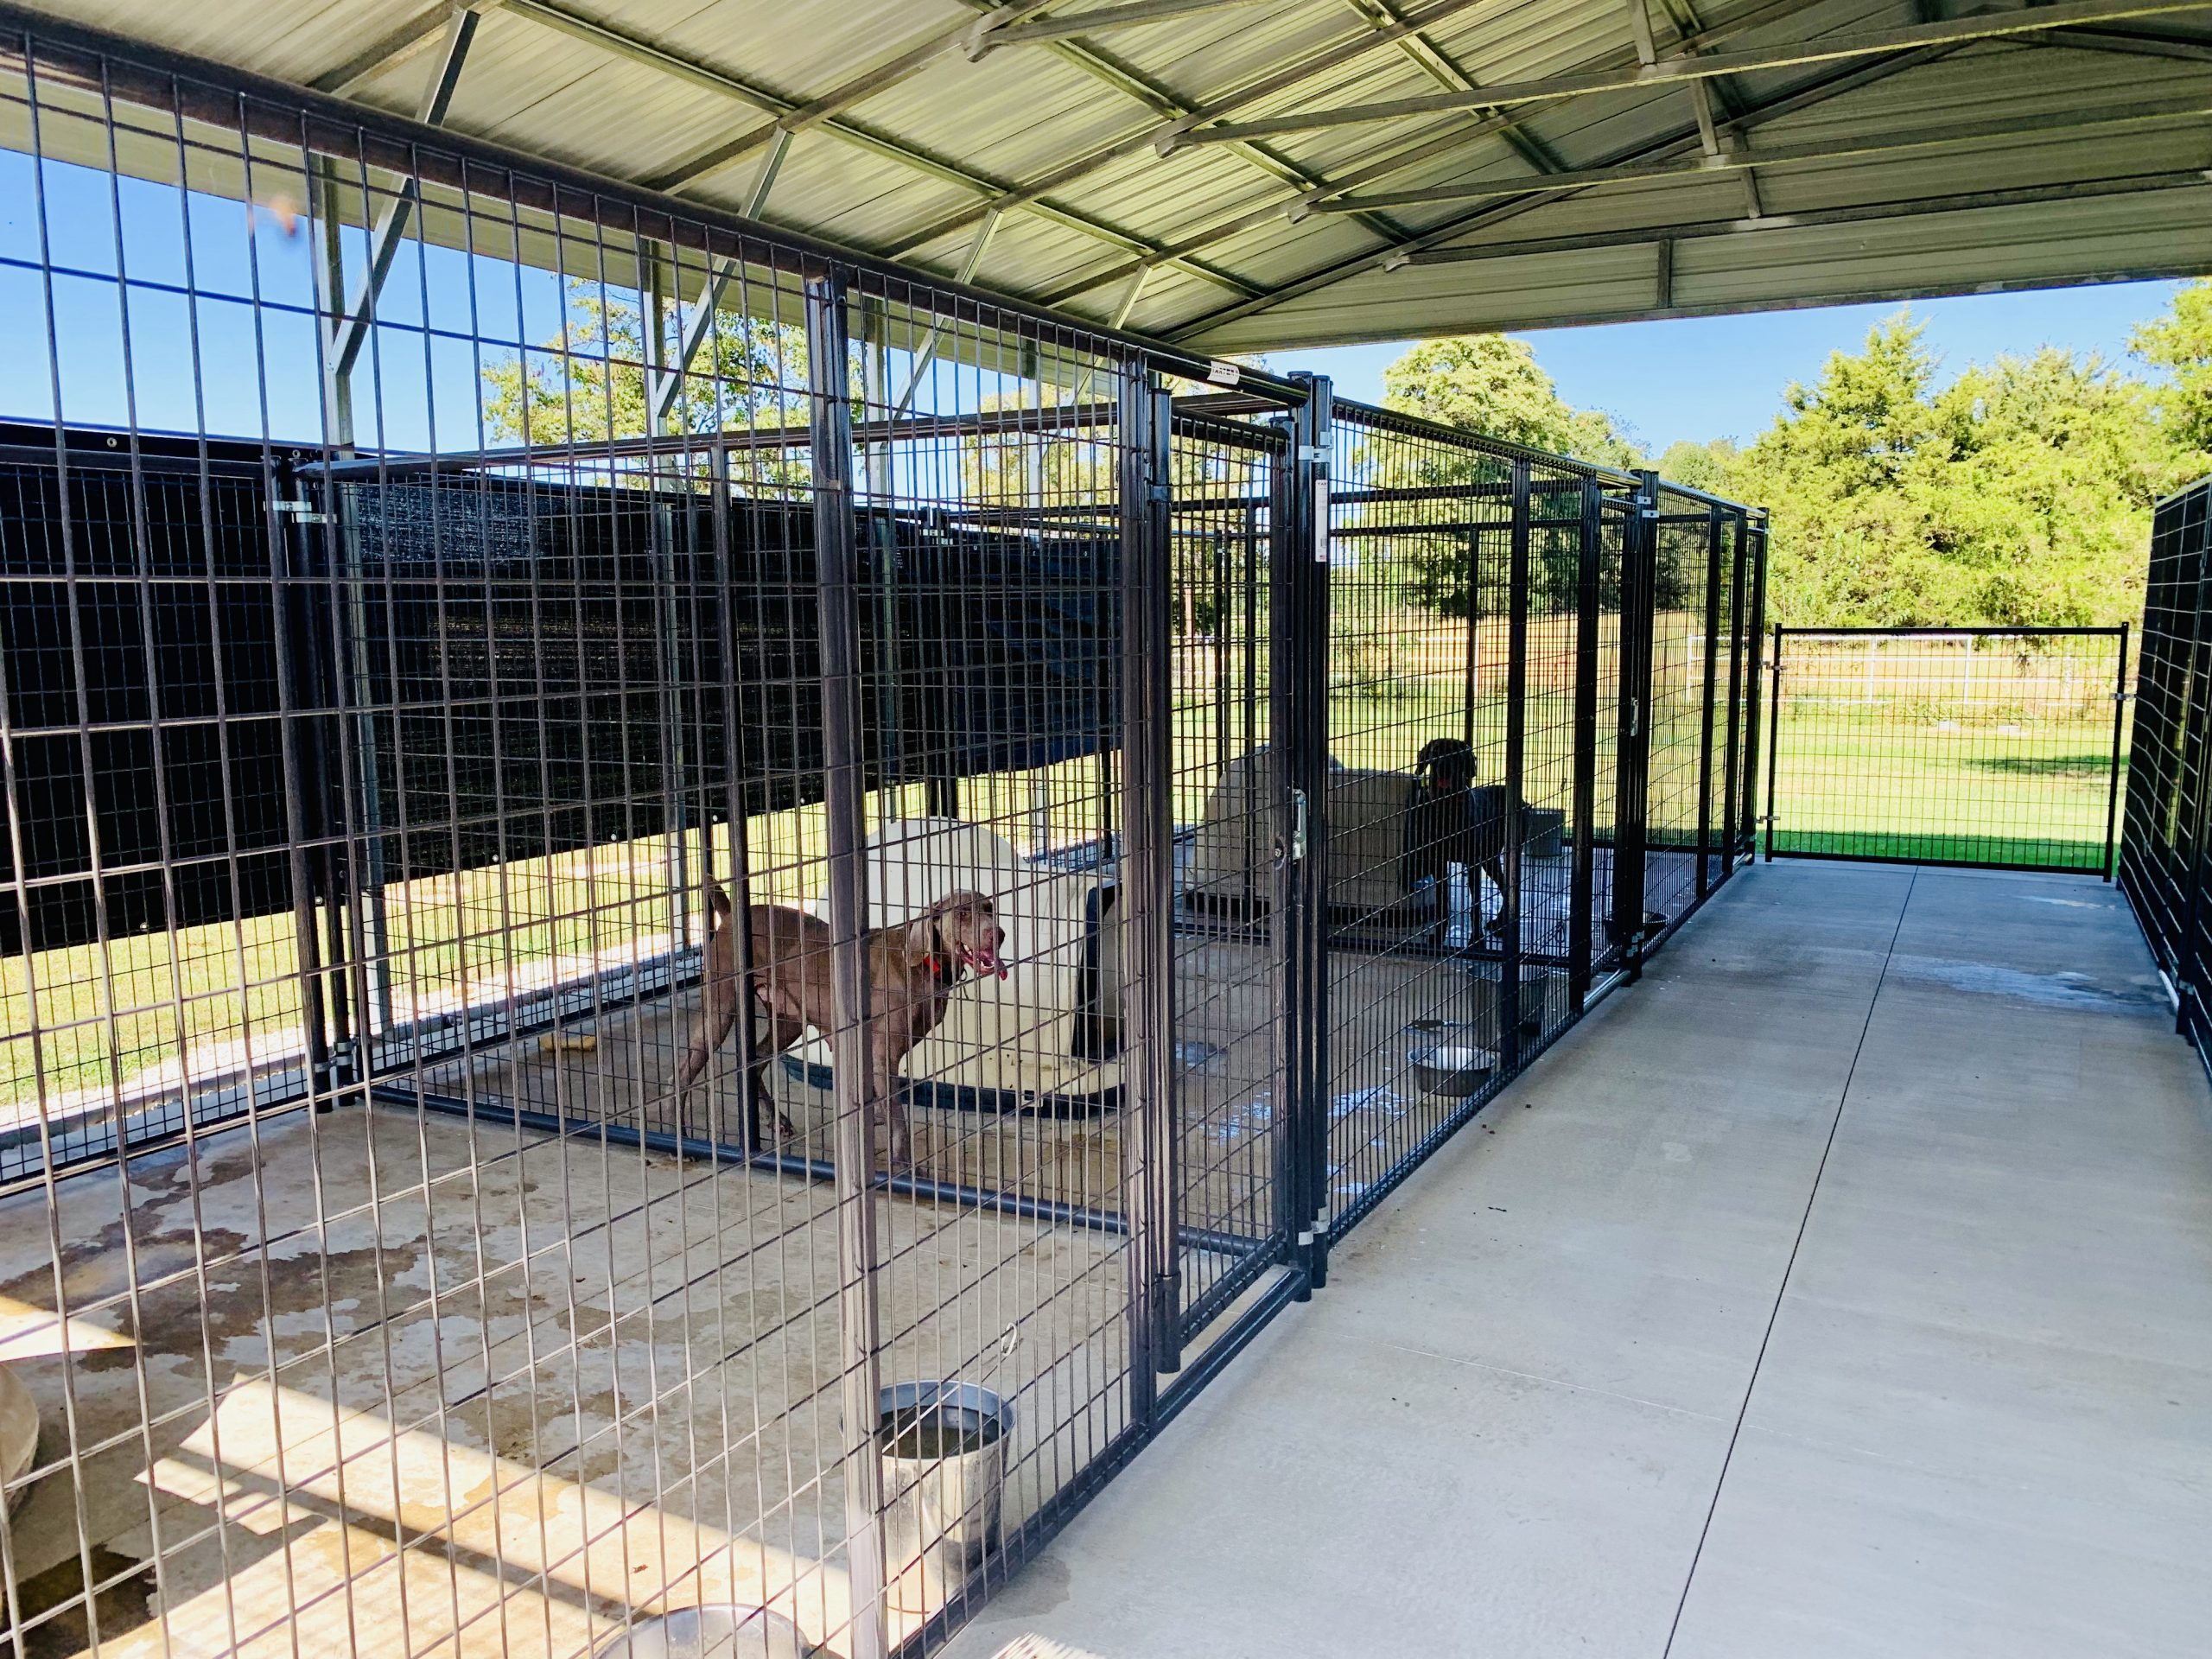 View of Cindy's kennel